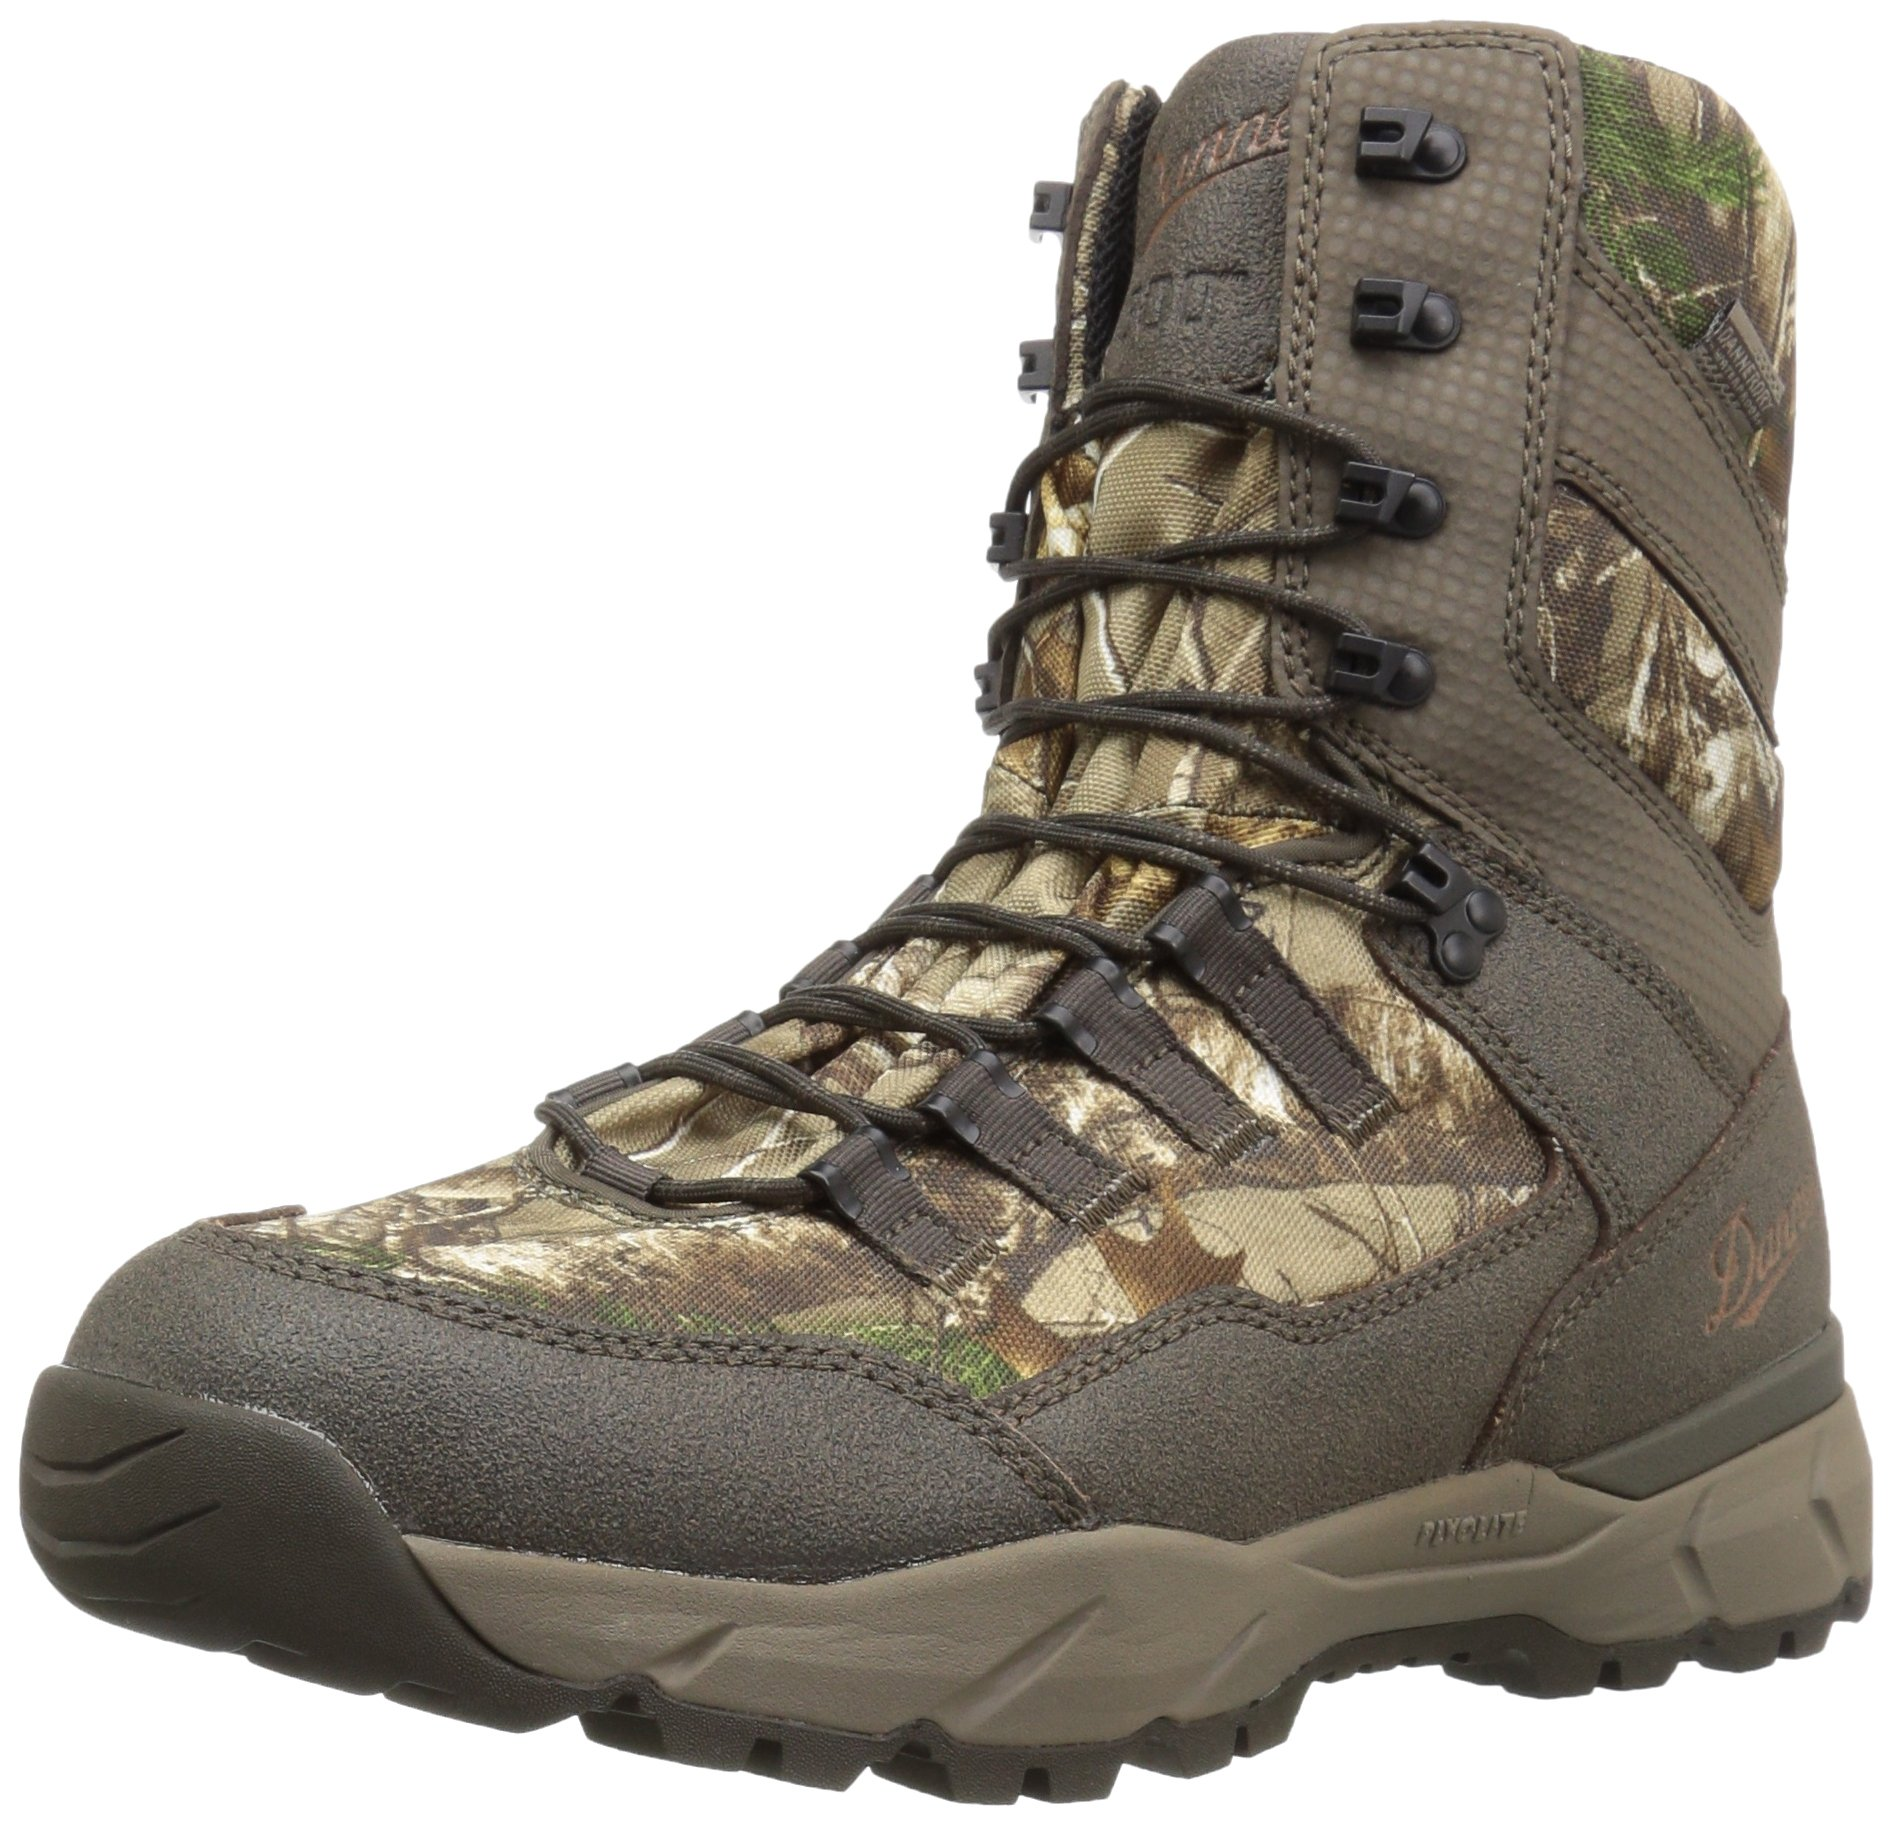 Danner Men's Vital Insulated 800G Hunting Shoes, Realtree Extra, 10 D US